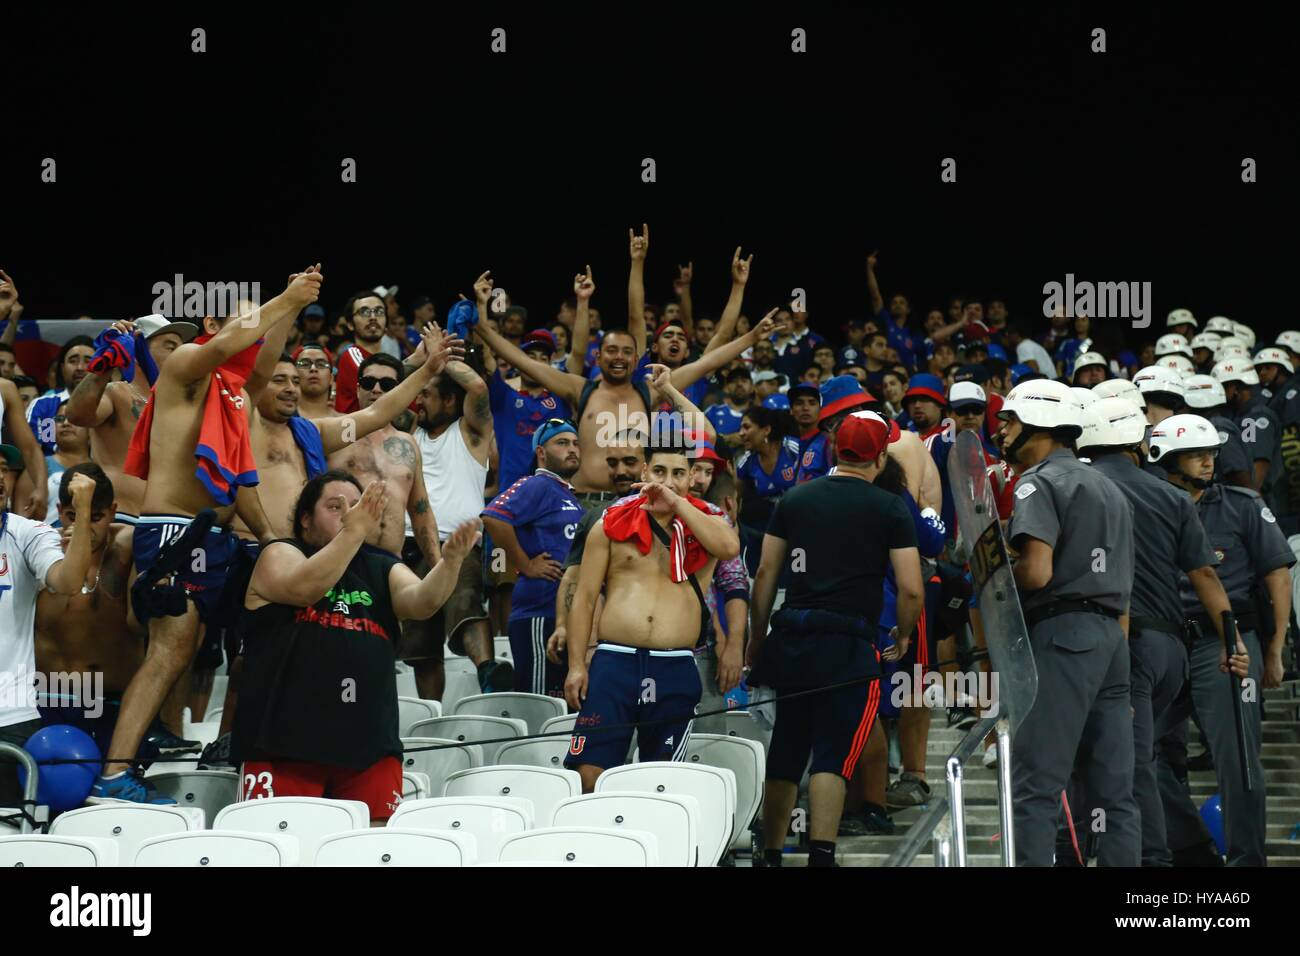 Fans of Universidad de Chile provoke Corinthians fans before the match validated by the first round of the 2017 Stock Photo